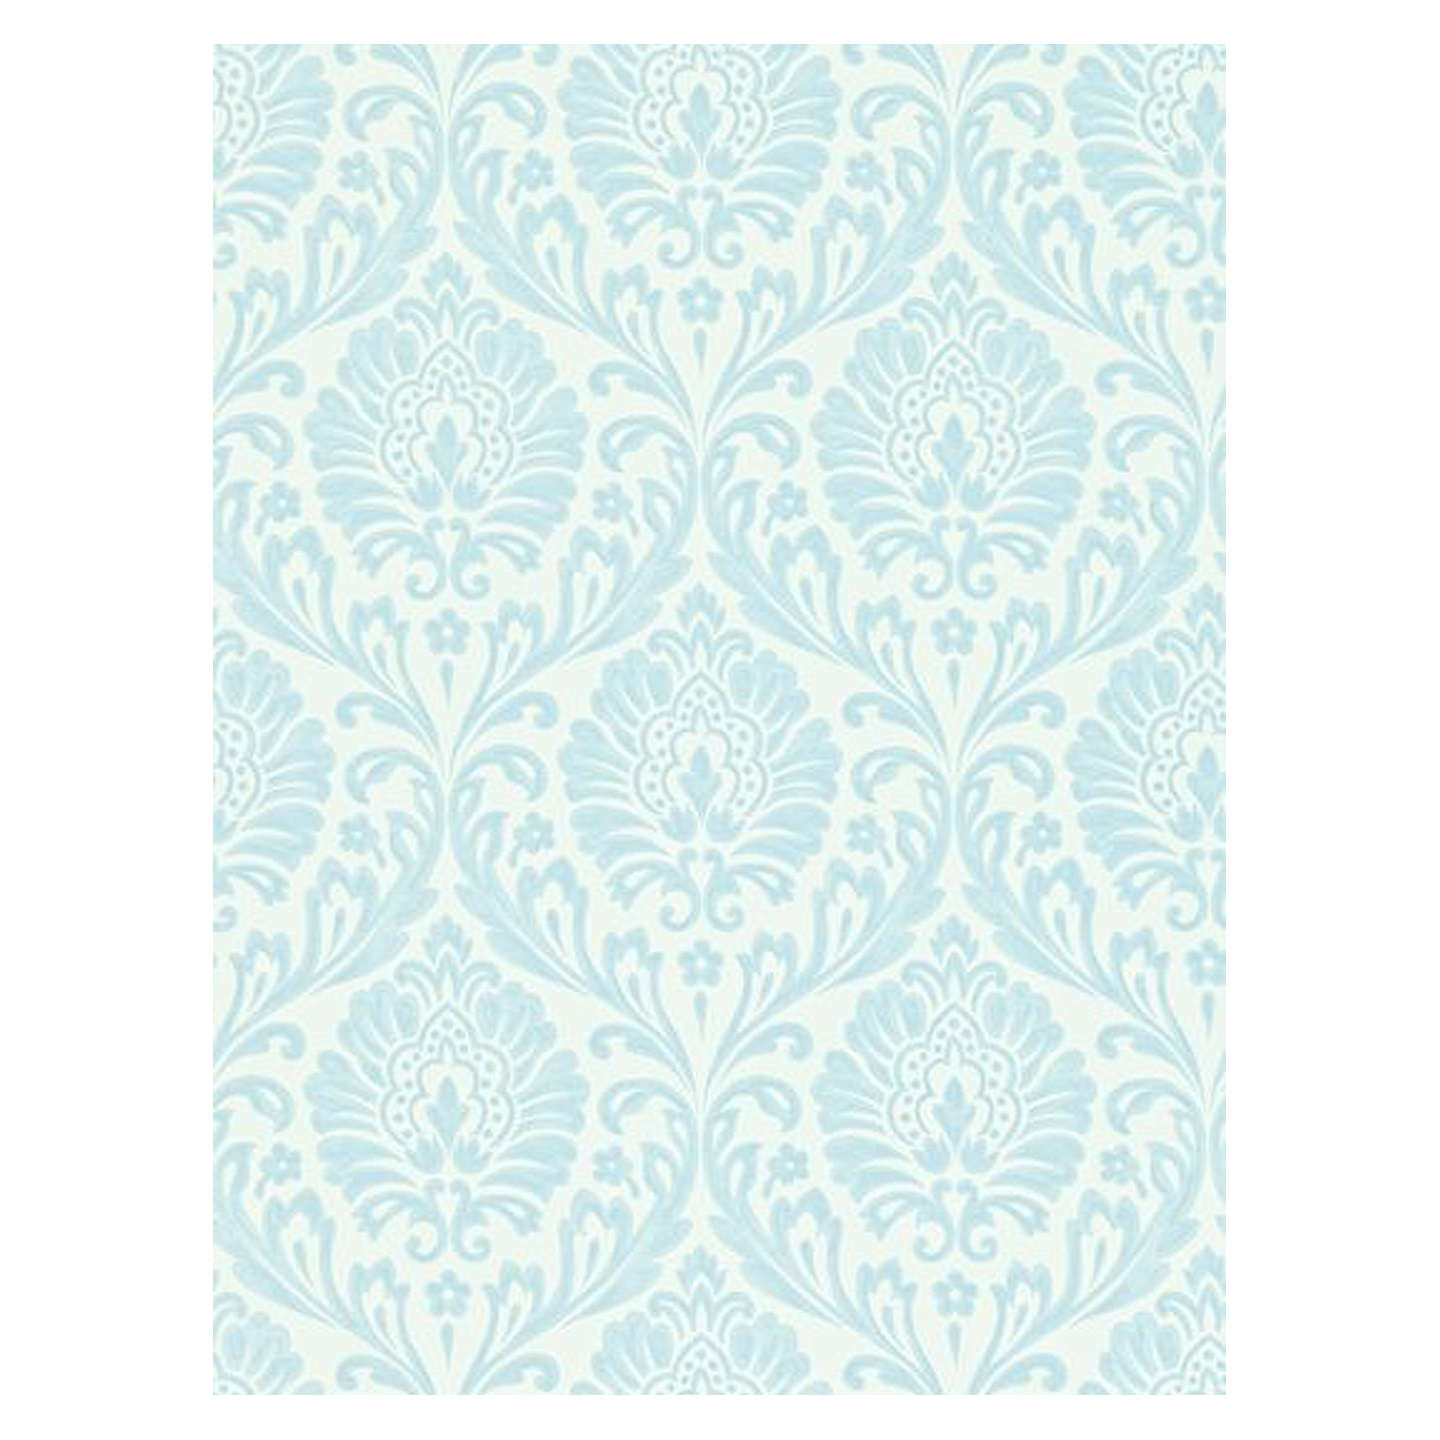 BuySanderson Home Ashby Damask Wallpaper China Blue Ivory 211999 Online At Johnlewis